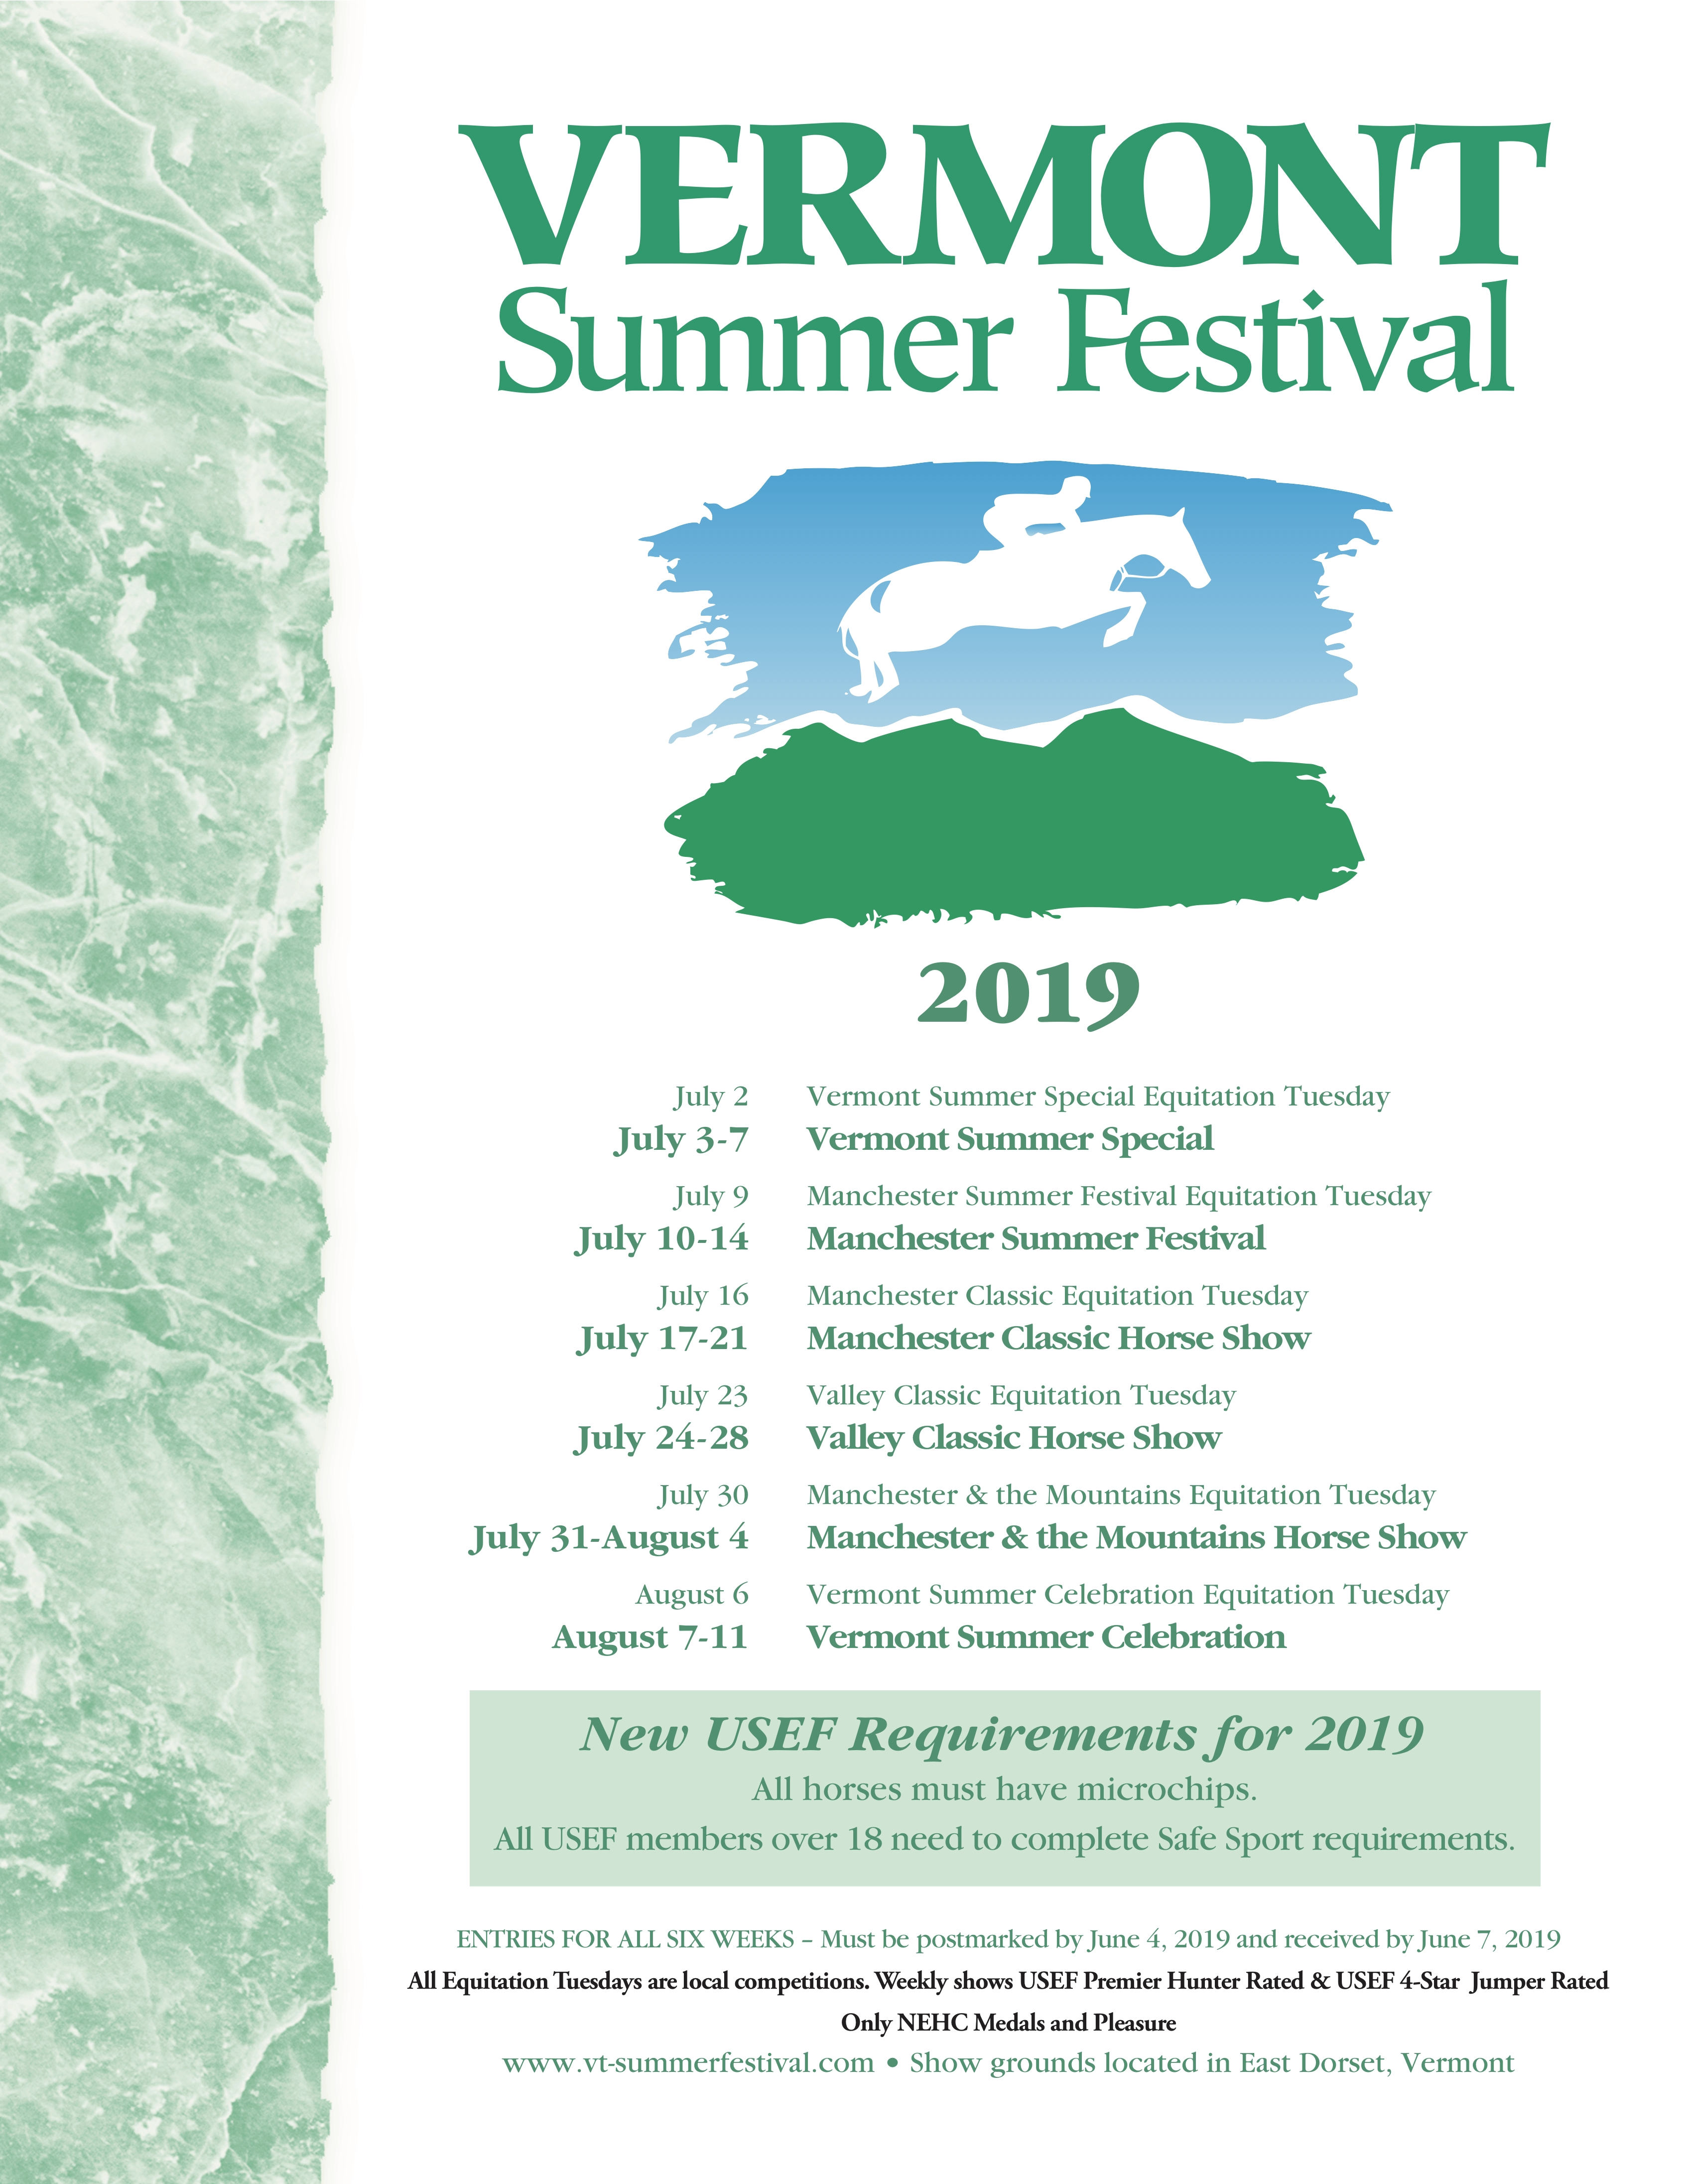 <br><b><a href='https://www.vt-summerfestival.com/prize.php/' target='_blank'>Click to view the 2019 Vermont Summer Festival Prize List!</a></b>